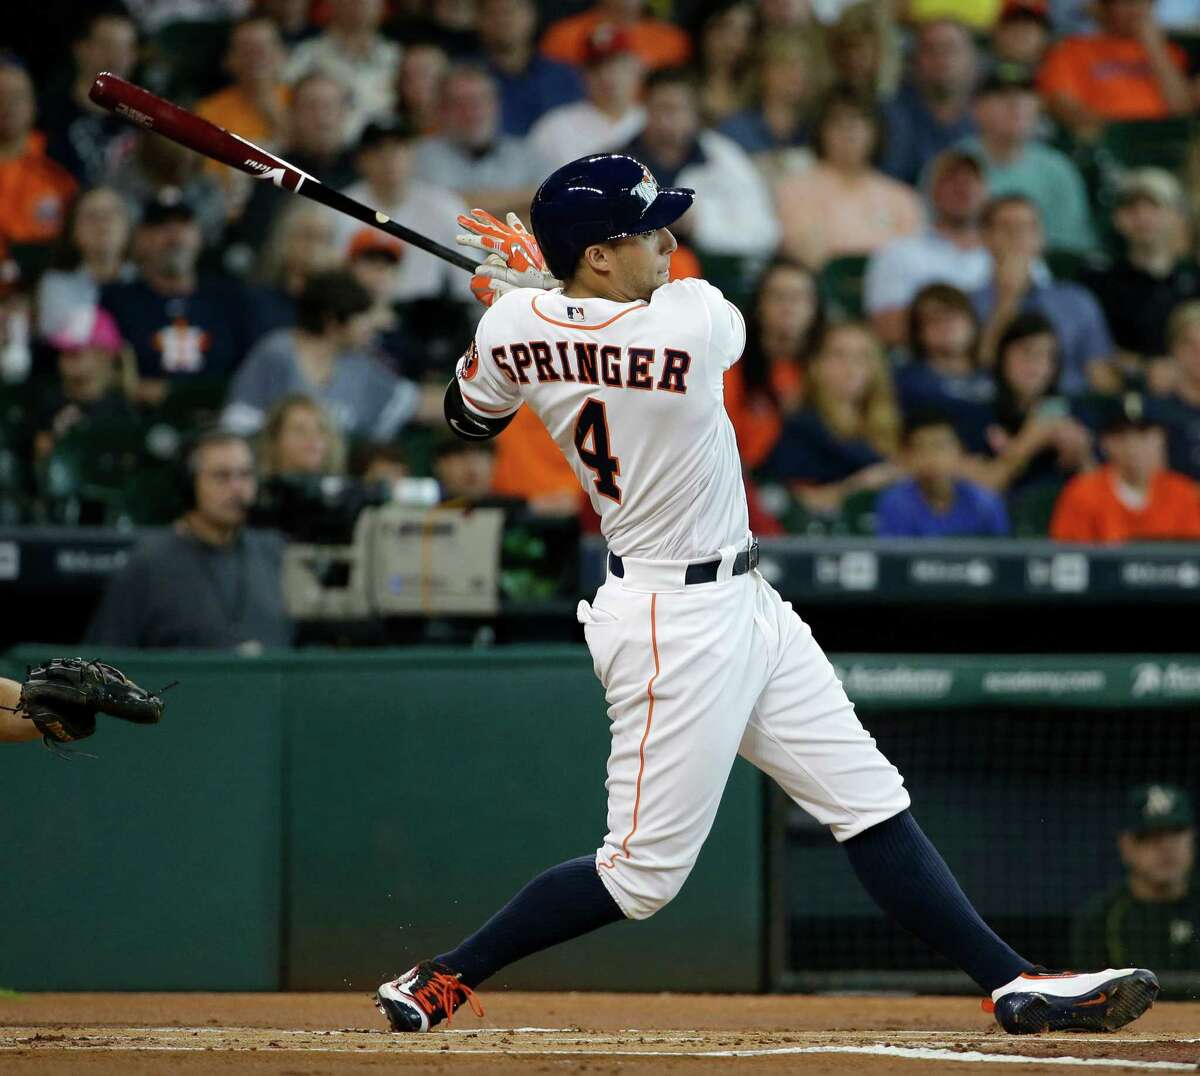 Leadoff batter and outfielder George Springer's all-around play, but especially his defense, should warrant a spot on the AL All-Star team and a trip to San Diego.